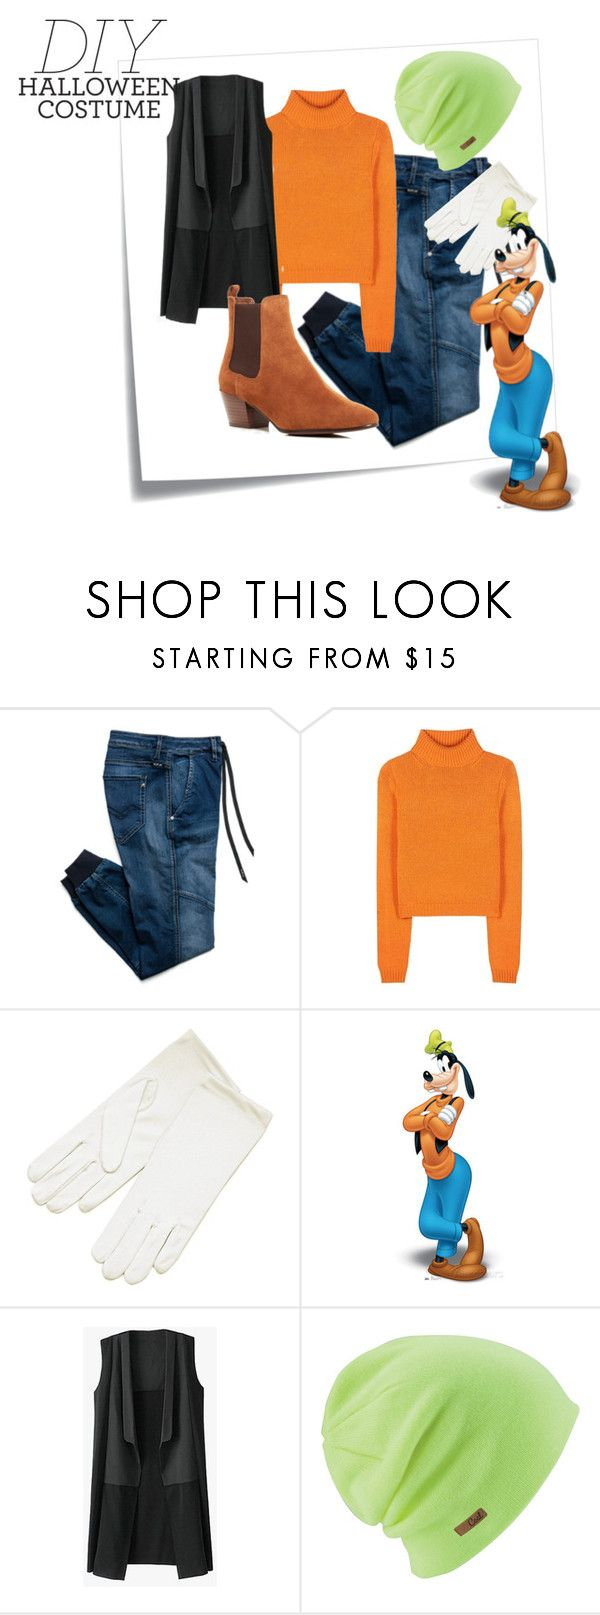 """DIY Halloween Costumes: Goofy"" by hideous ❤ liked on Polyvore featuring Post-It, Replay, Acne Studios, Coal, Sam Edelman, disney, goofy, halloweencostume and DIYHalloween"